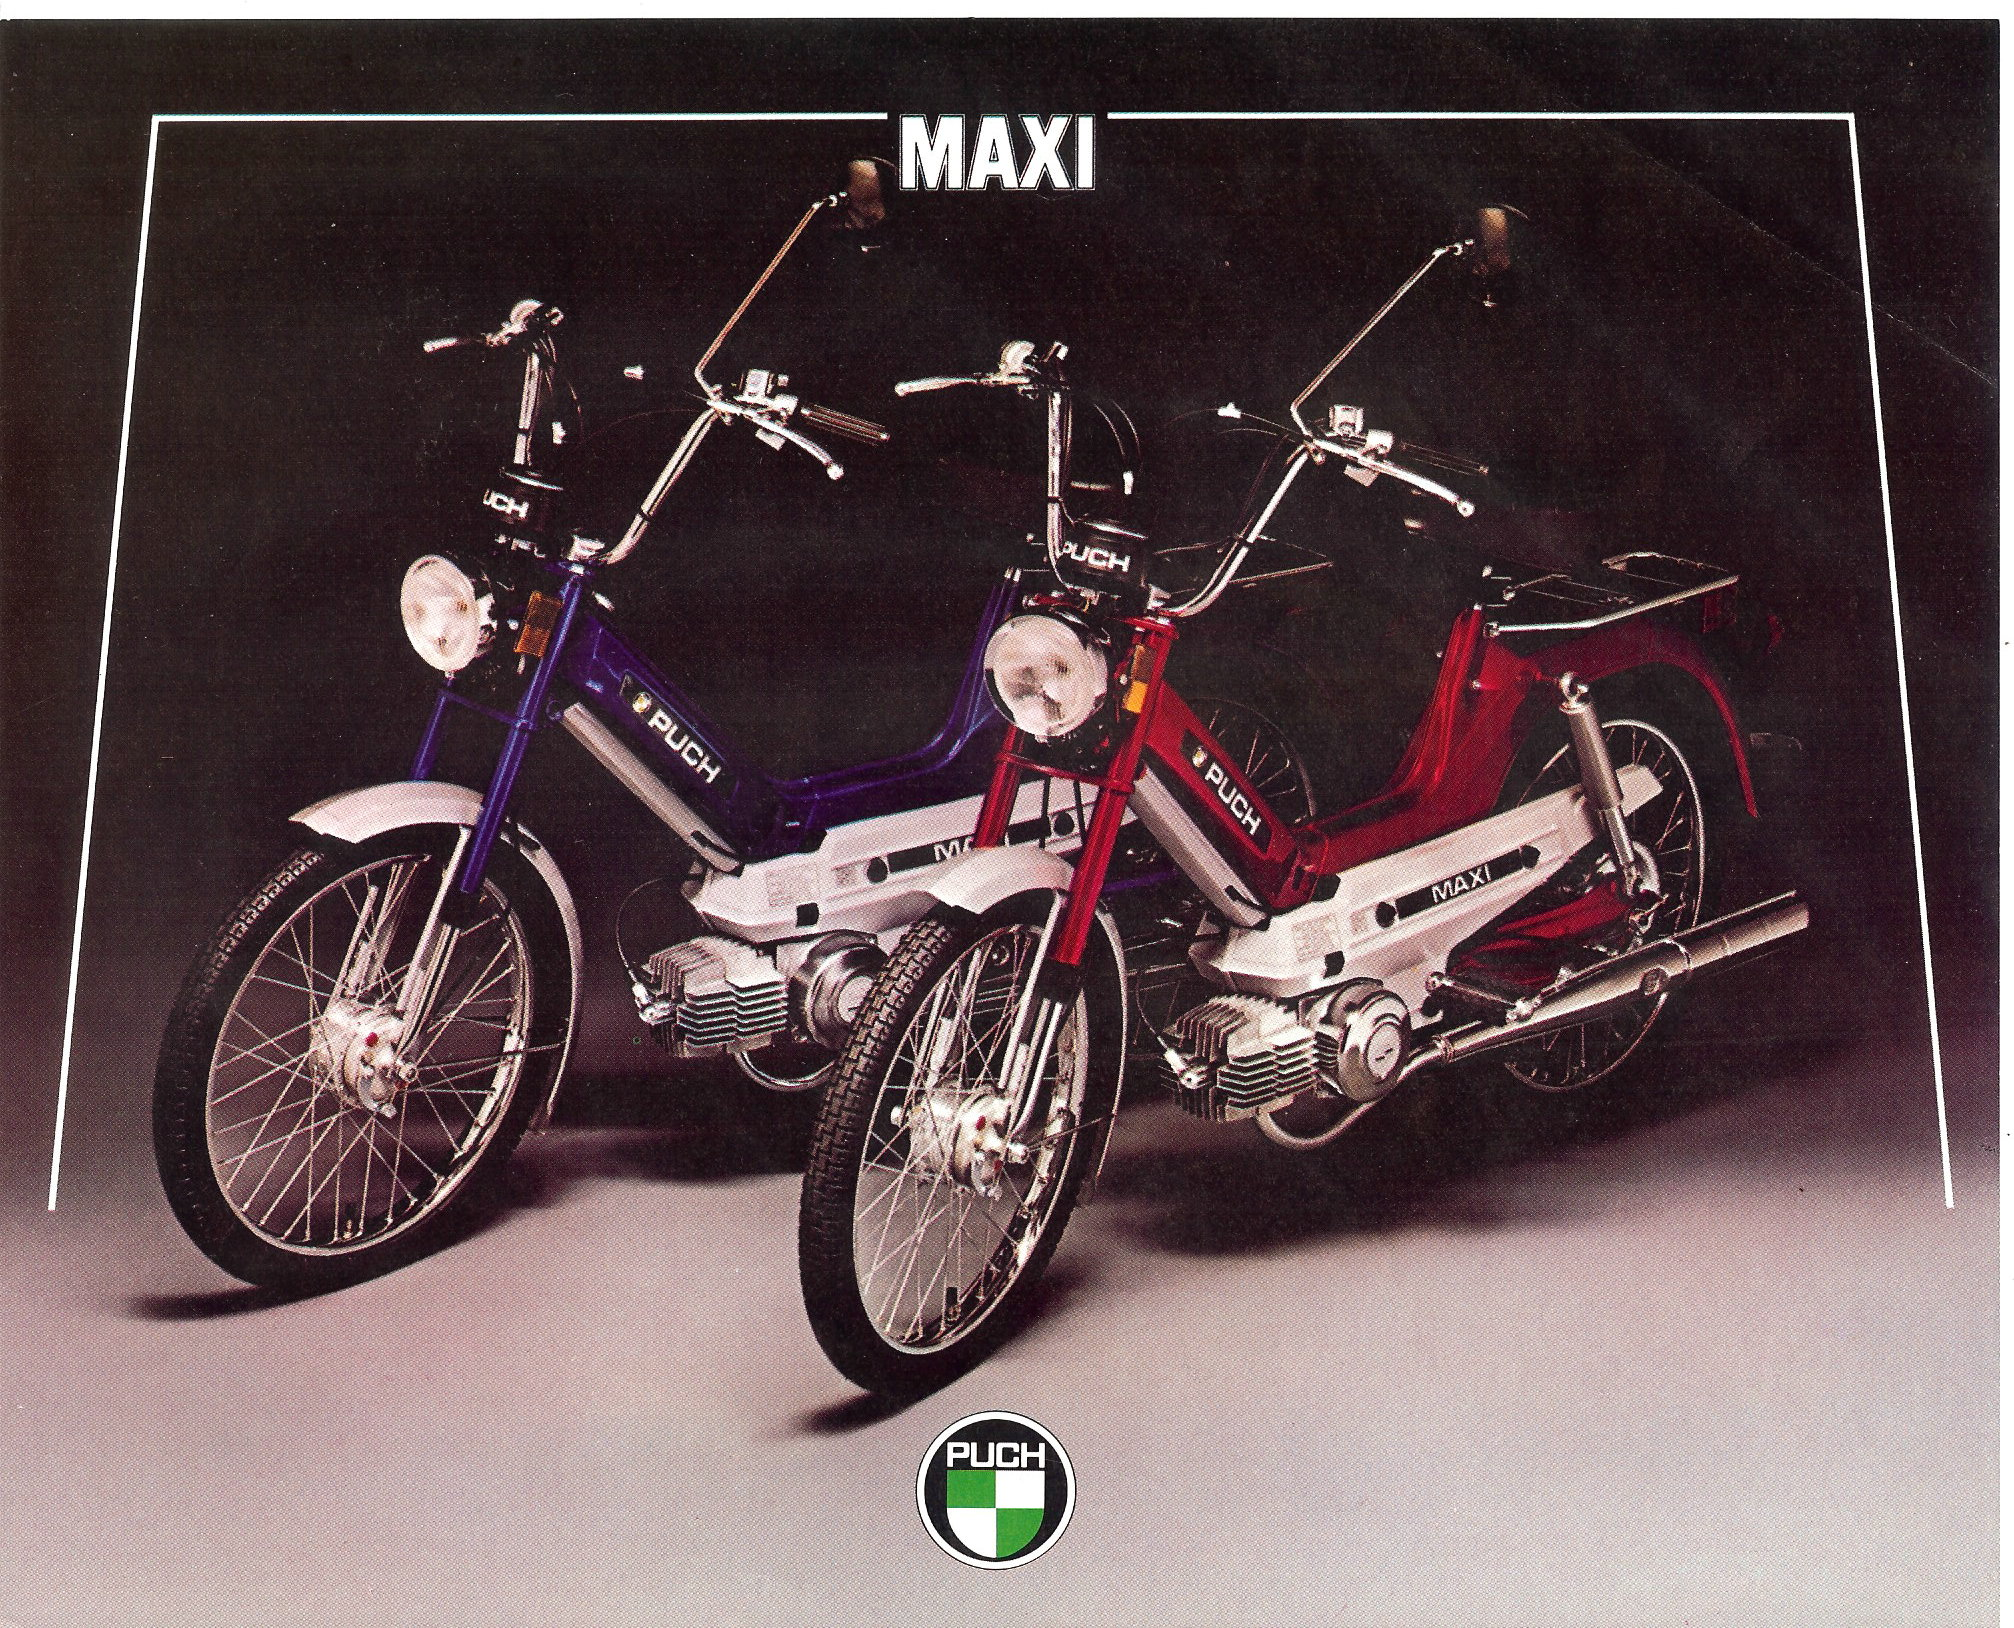 Puch Maxi LF (LongFrame) images #121345